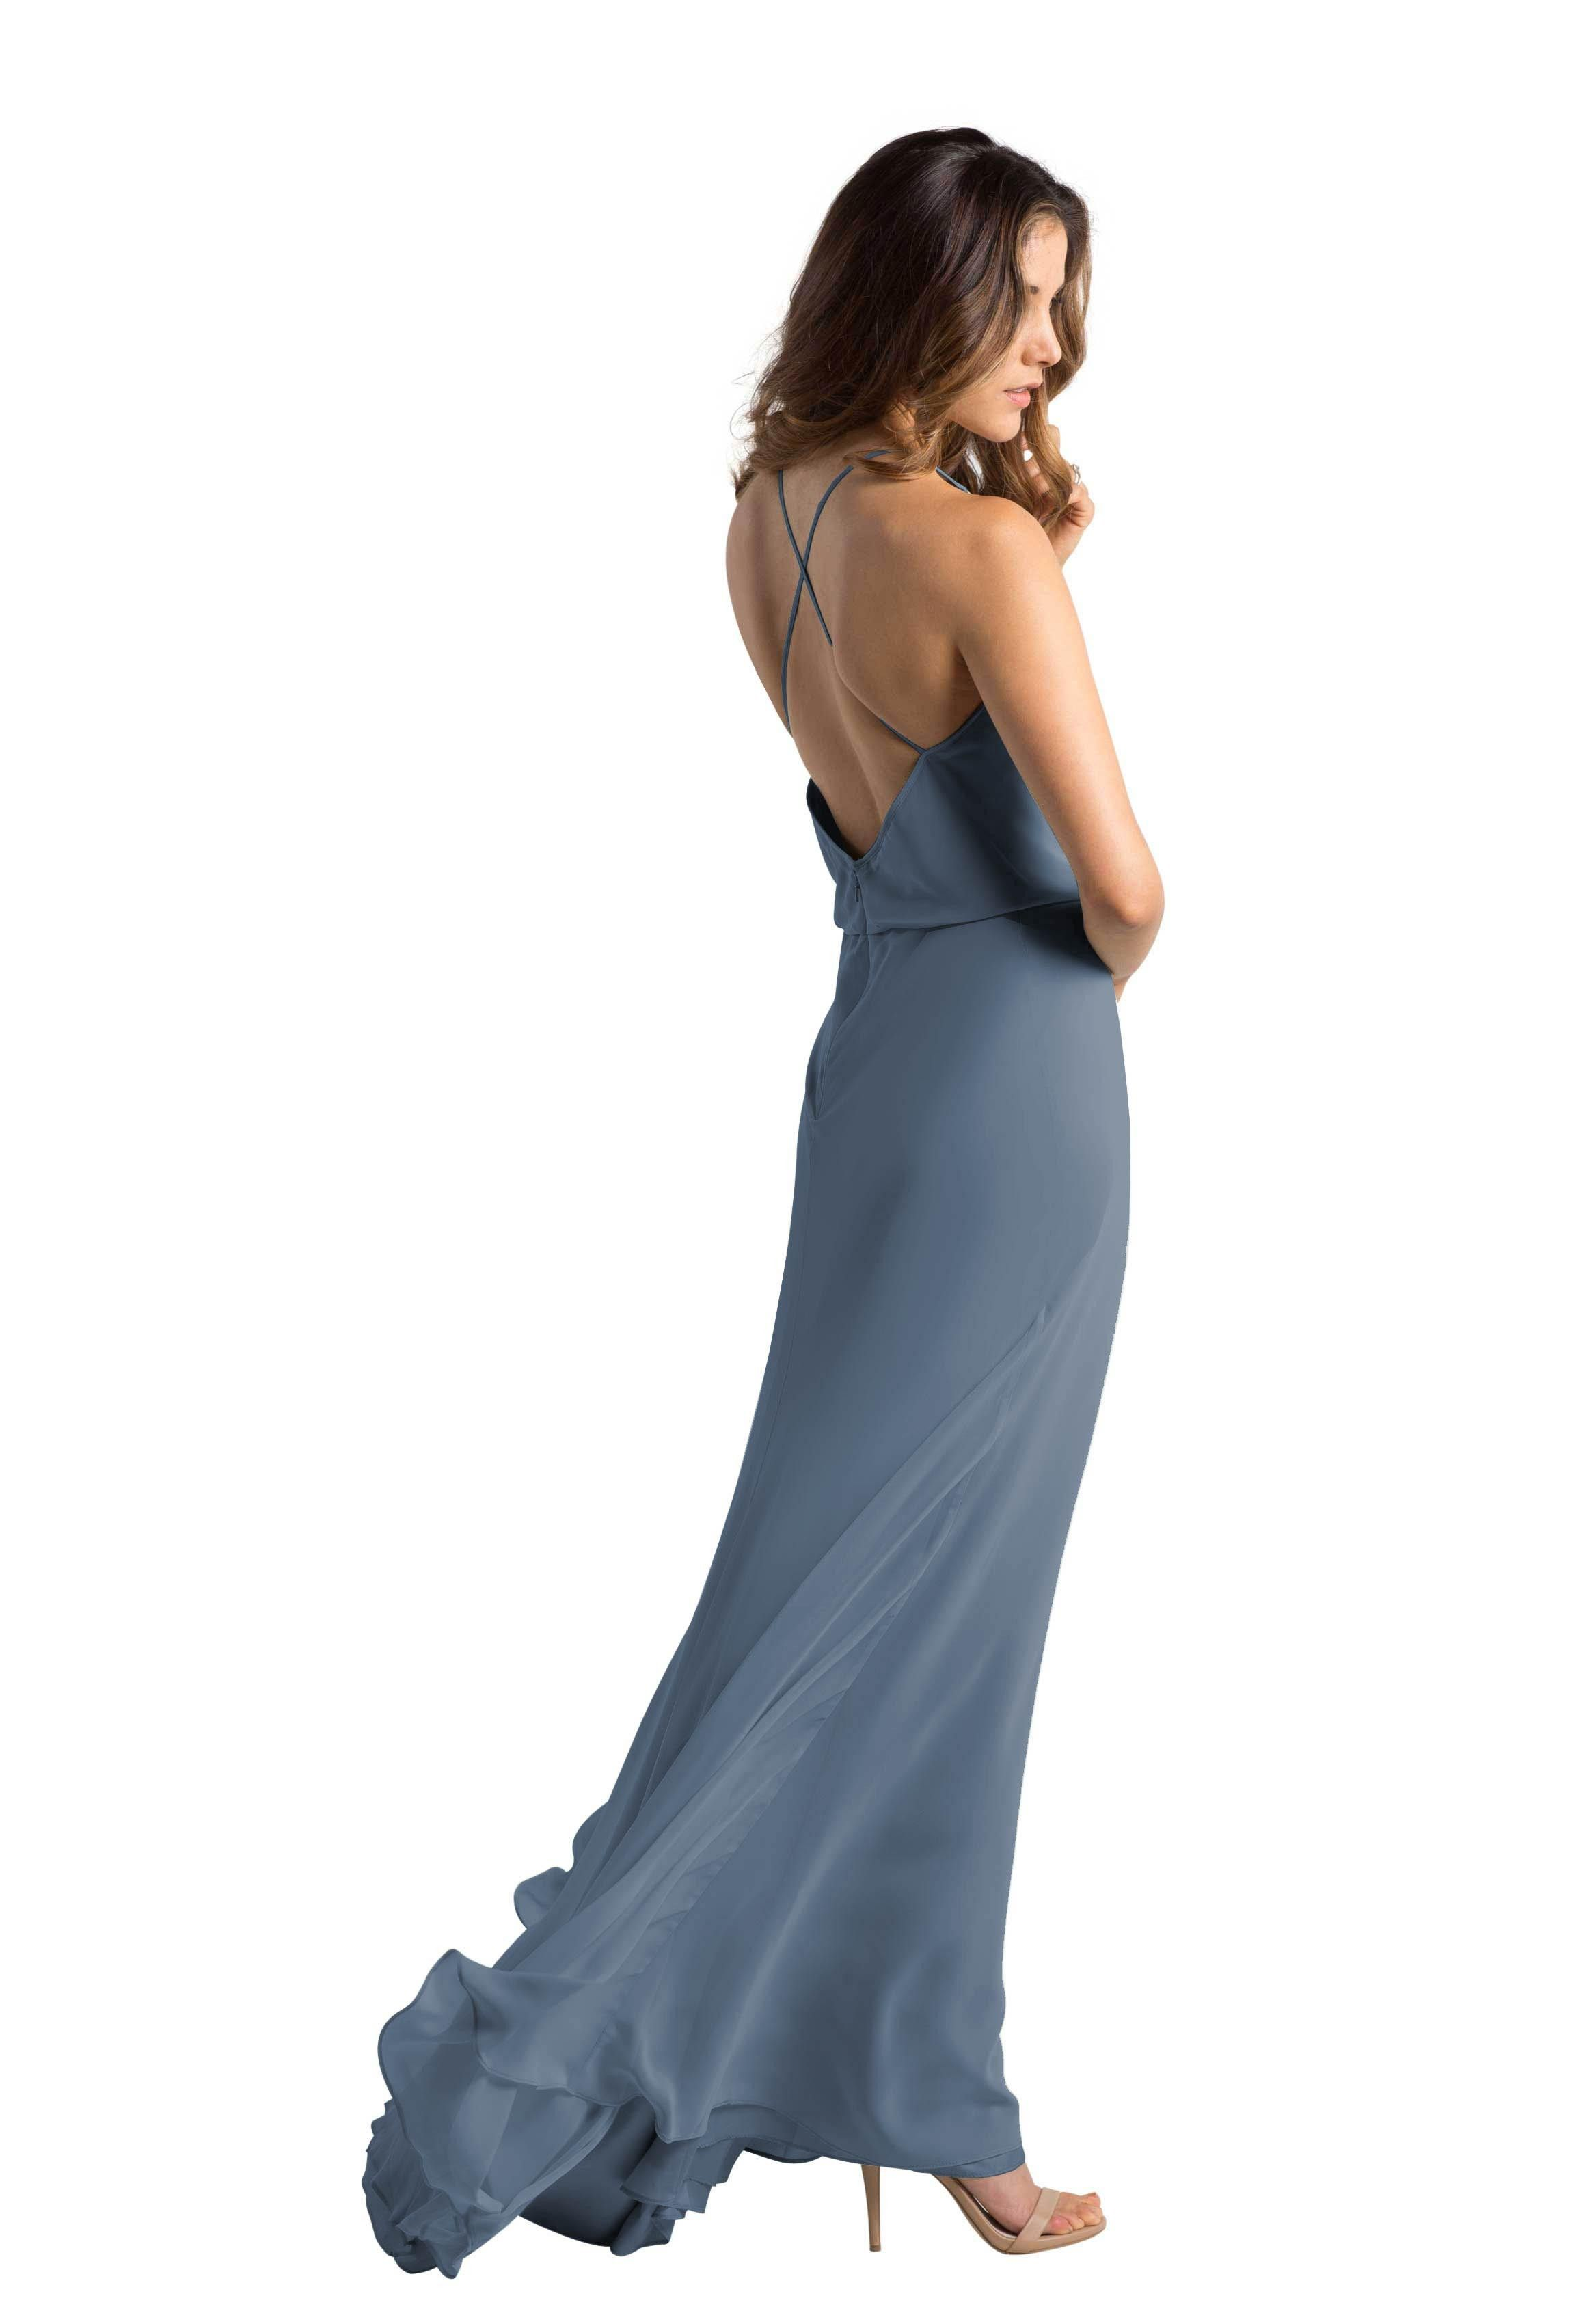 Monique lhuillier valerie chiffon bridesmaid dresses wedding a floor length cross back chiffon bridesmaid dress in seven colors affordable designer ombrellifo Image collections